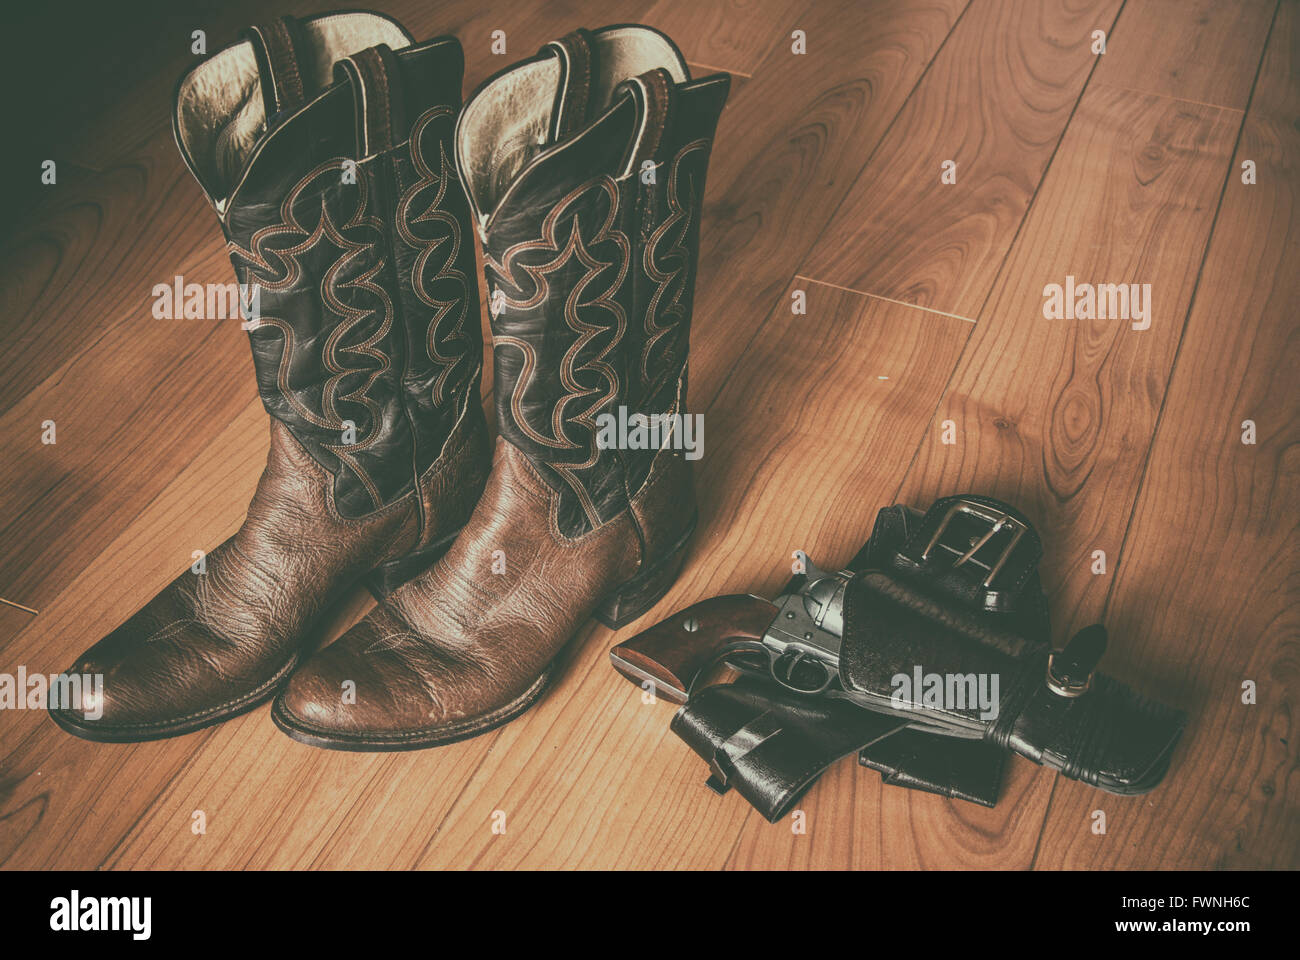 04388a30cee Cowboy Boots Stock Photos & Cowboy Boots Stock Images - Alamy